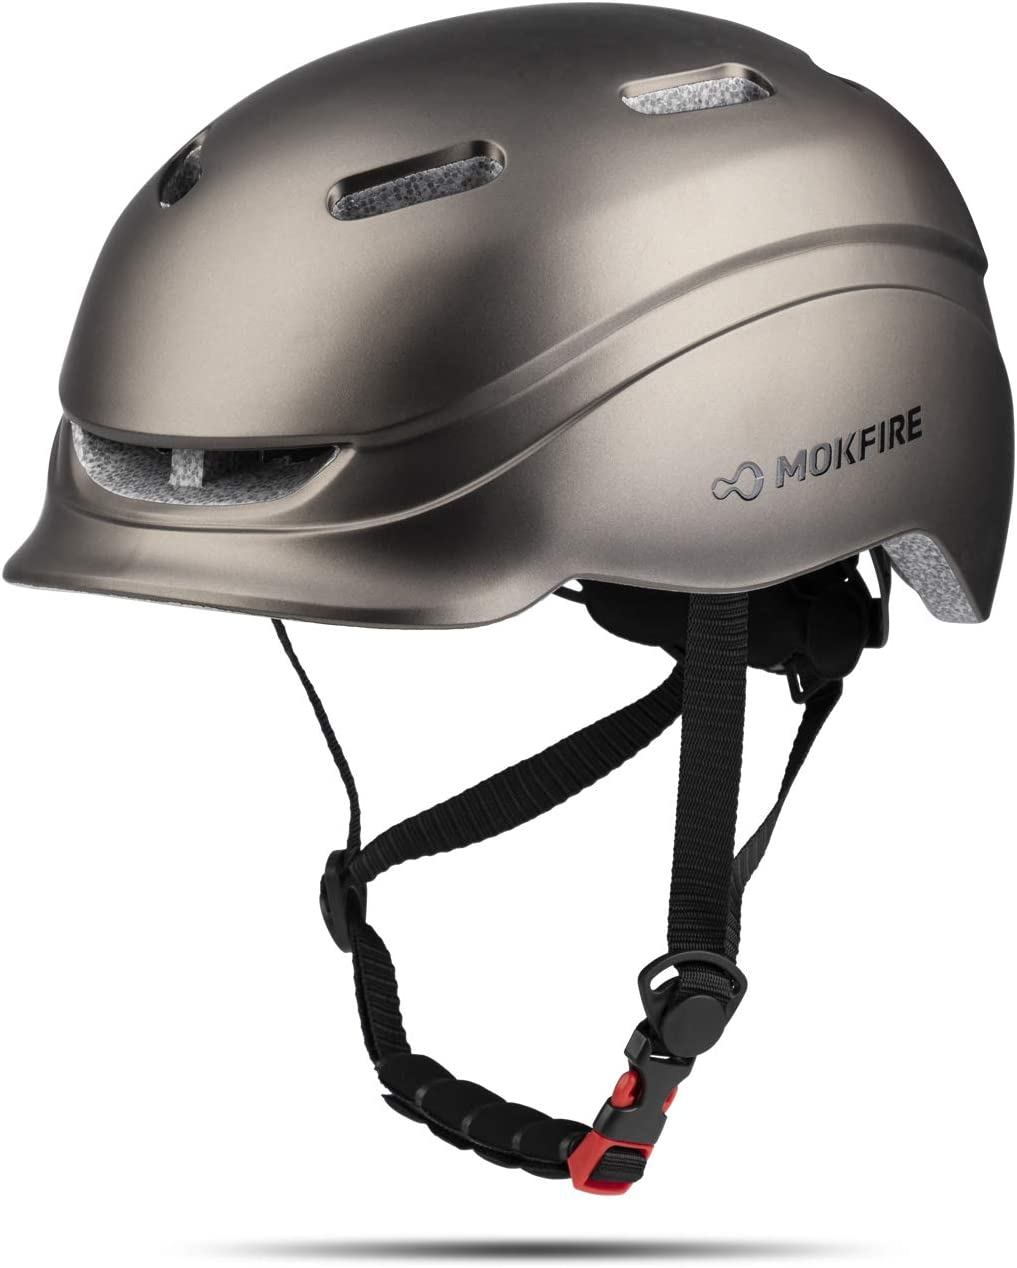 Adult Safety Cycling Bike Helmet with USB Light Rechargeable for Men Women